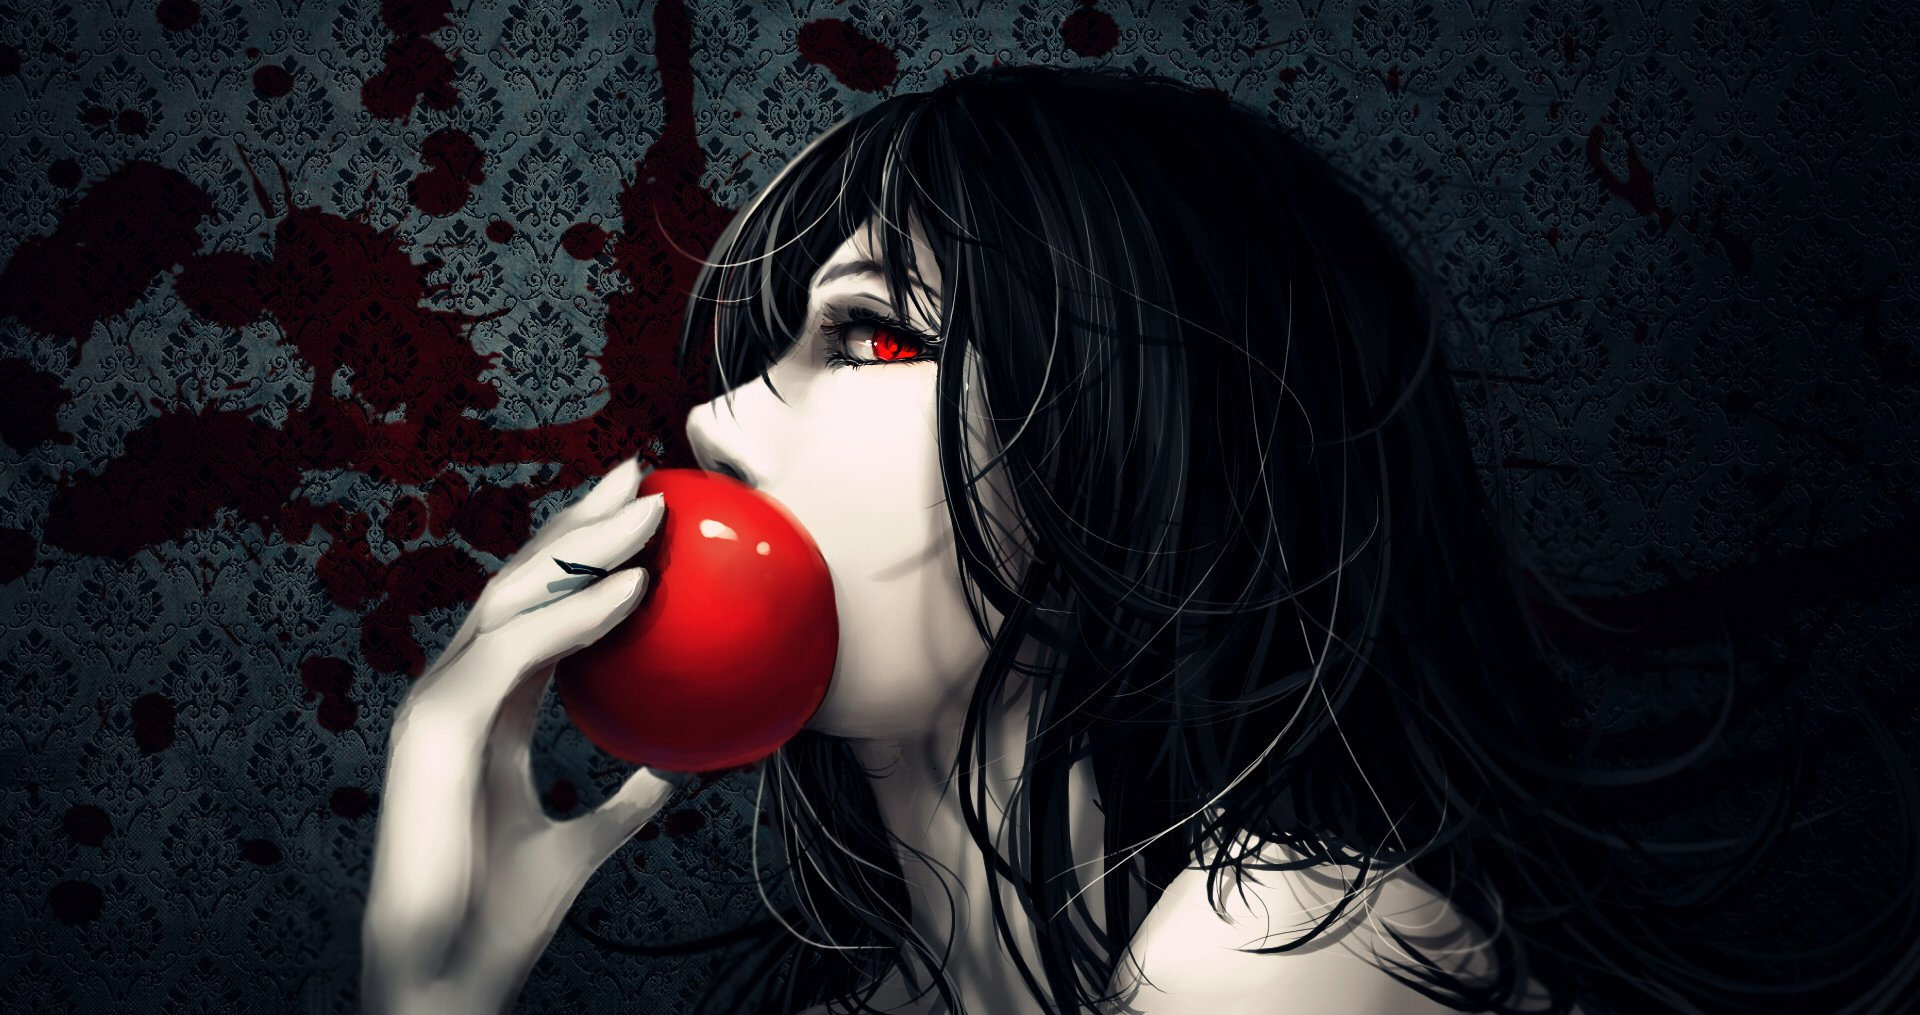 Anime girl with black hair and red eyes